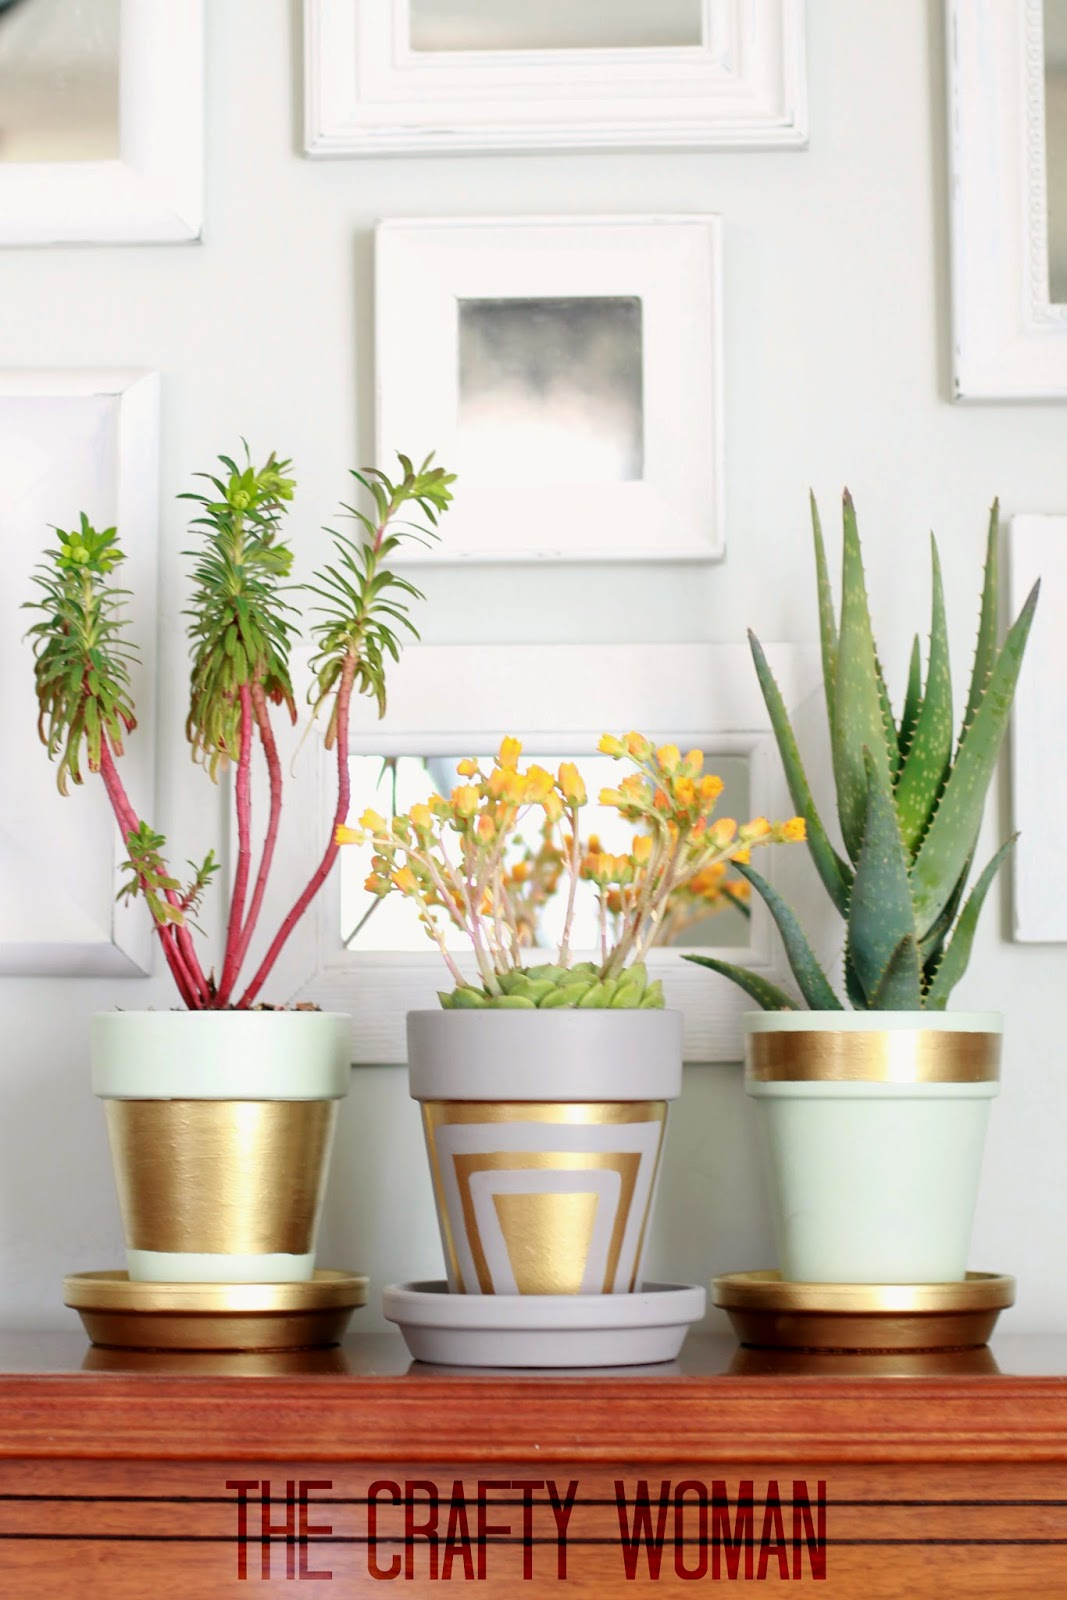 6 Pastel Painted Pots Lined with Golden Shapes